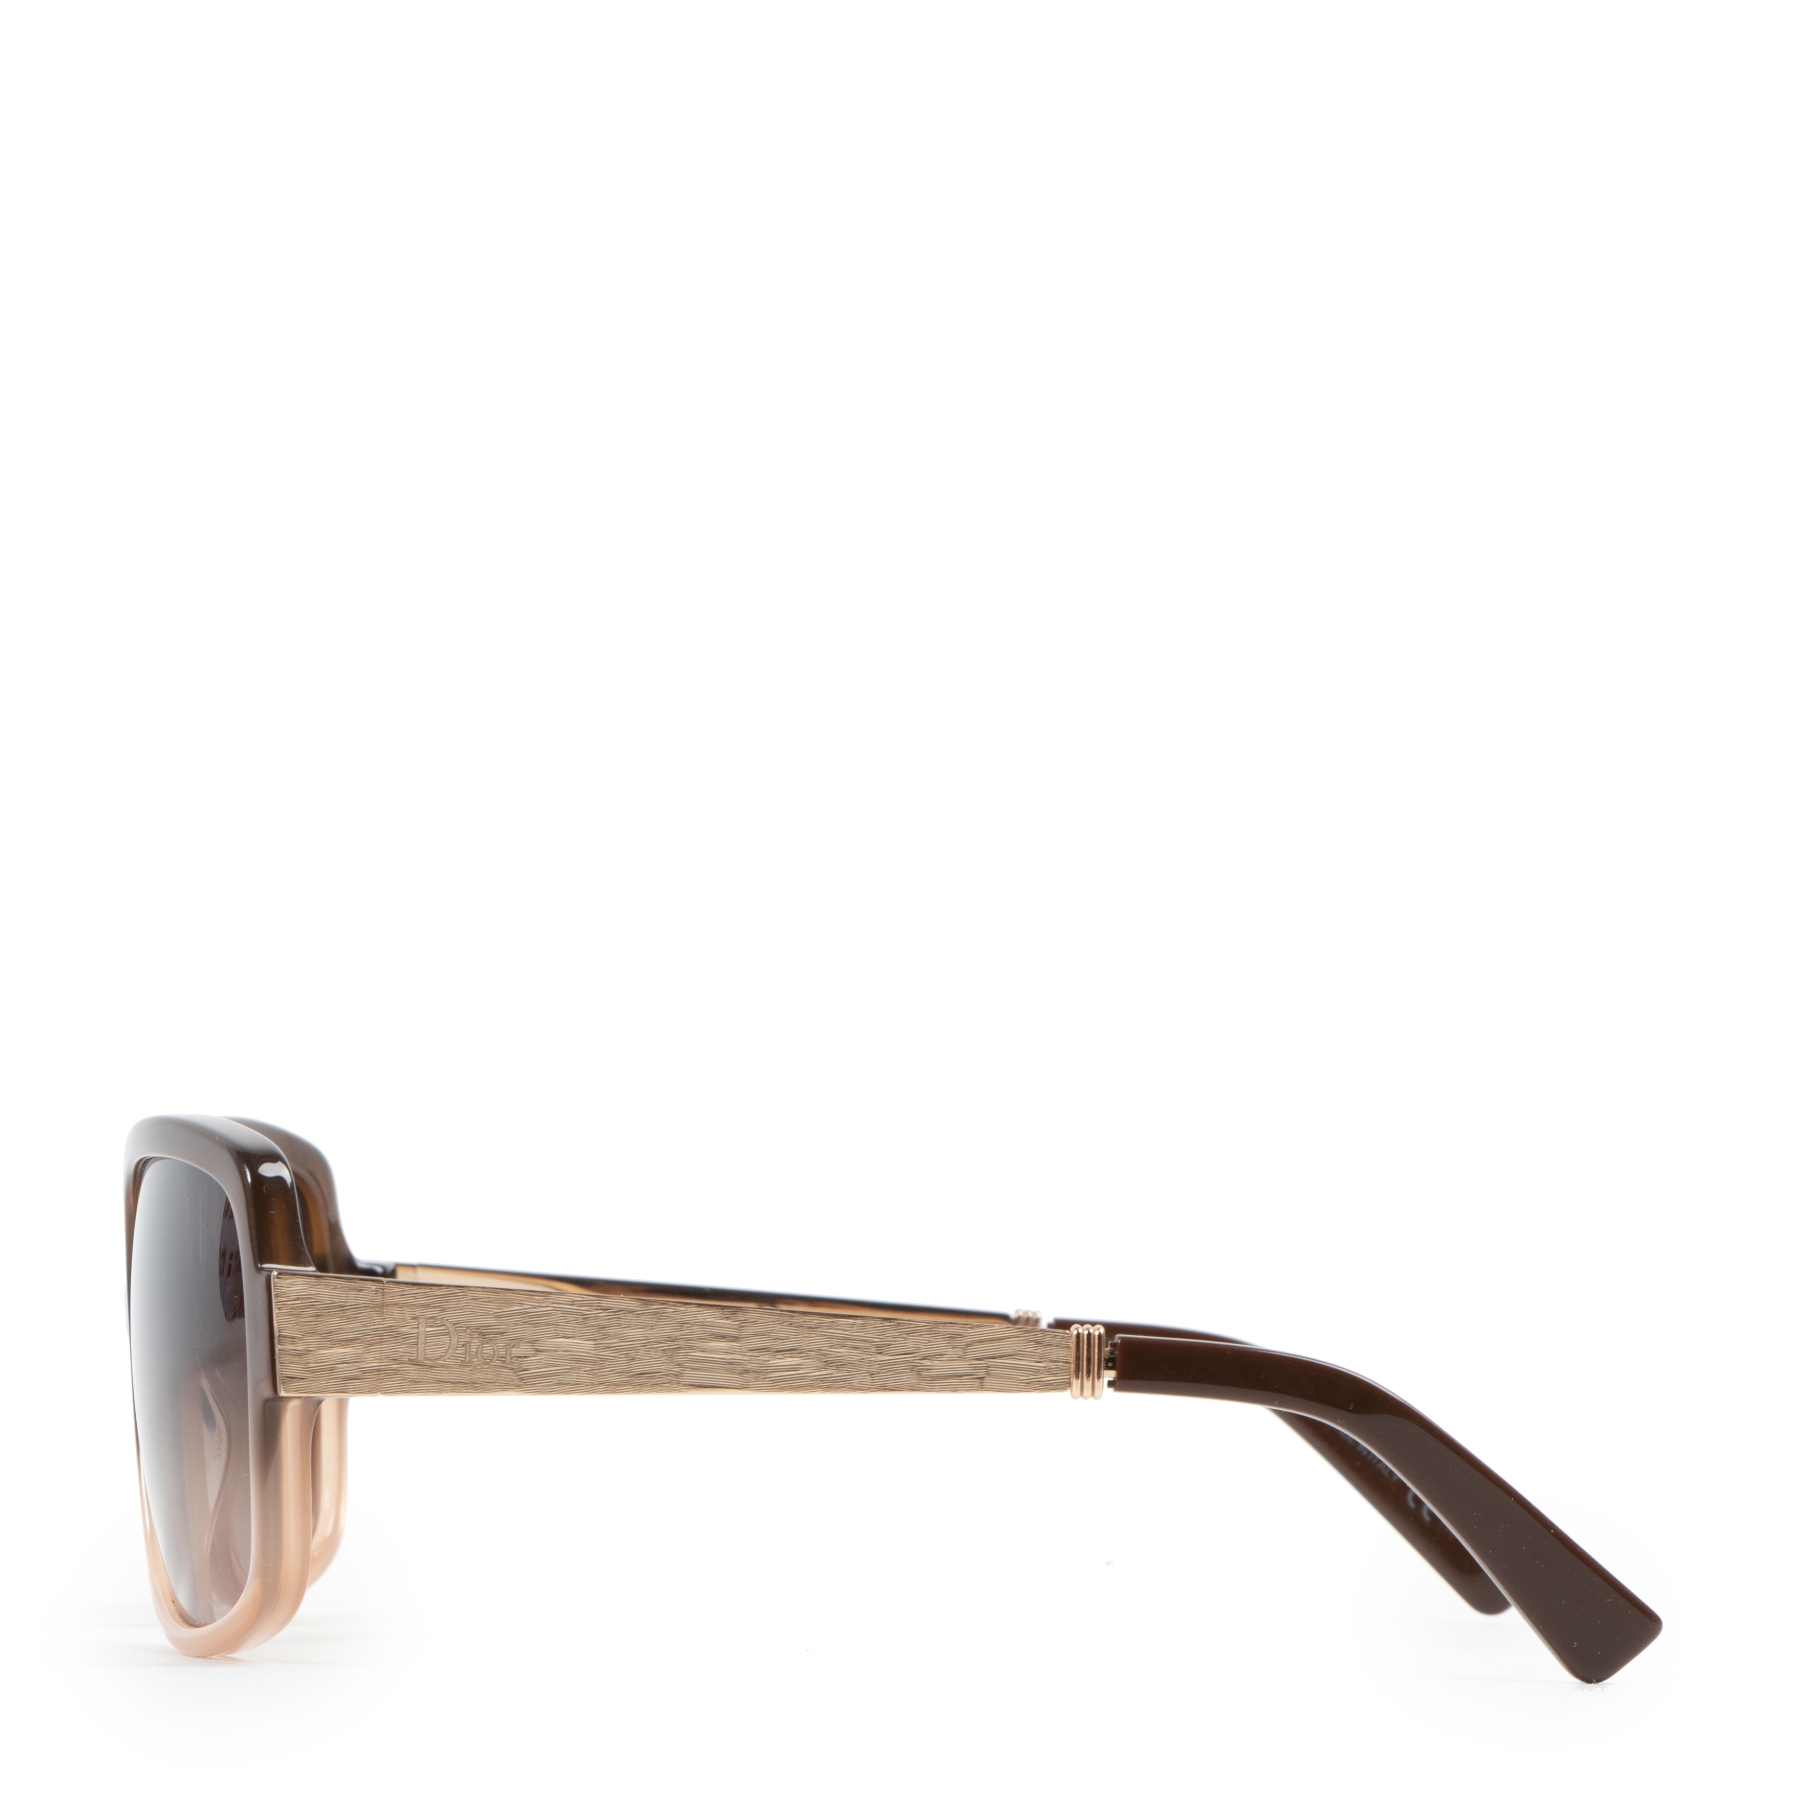 Authentic secondhand Dior Ombre Sunglasses designer accessories fashion luxury vintage webshop safe secure online shopping